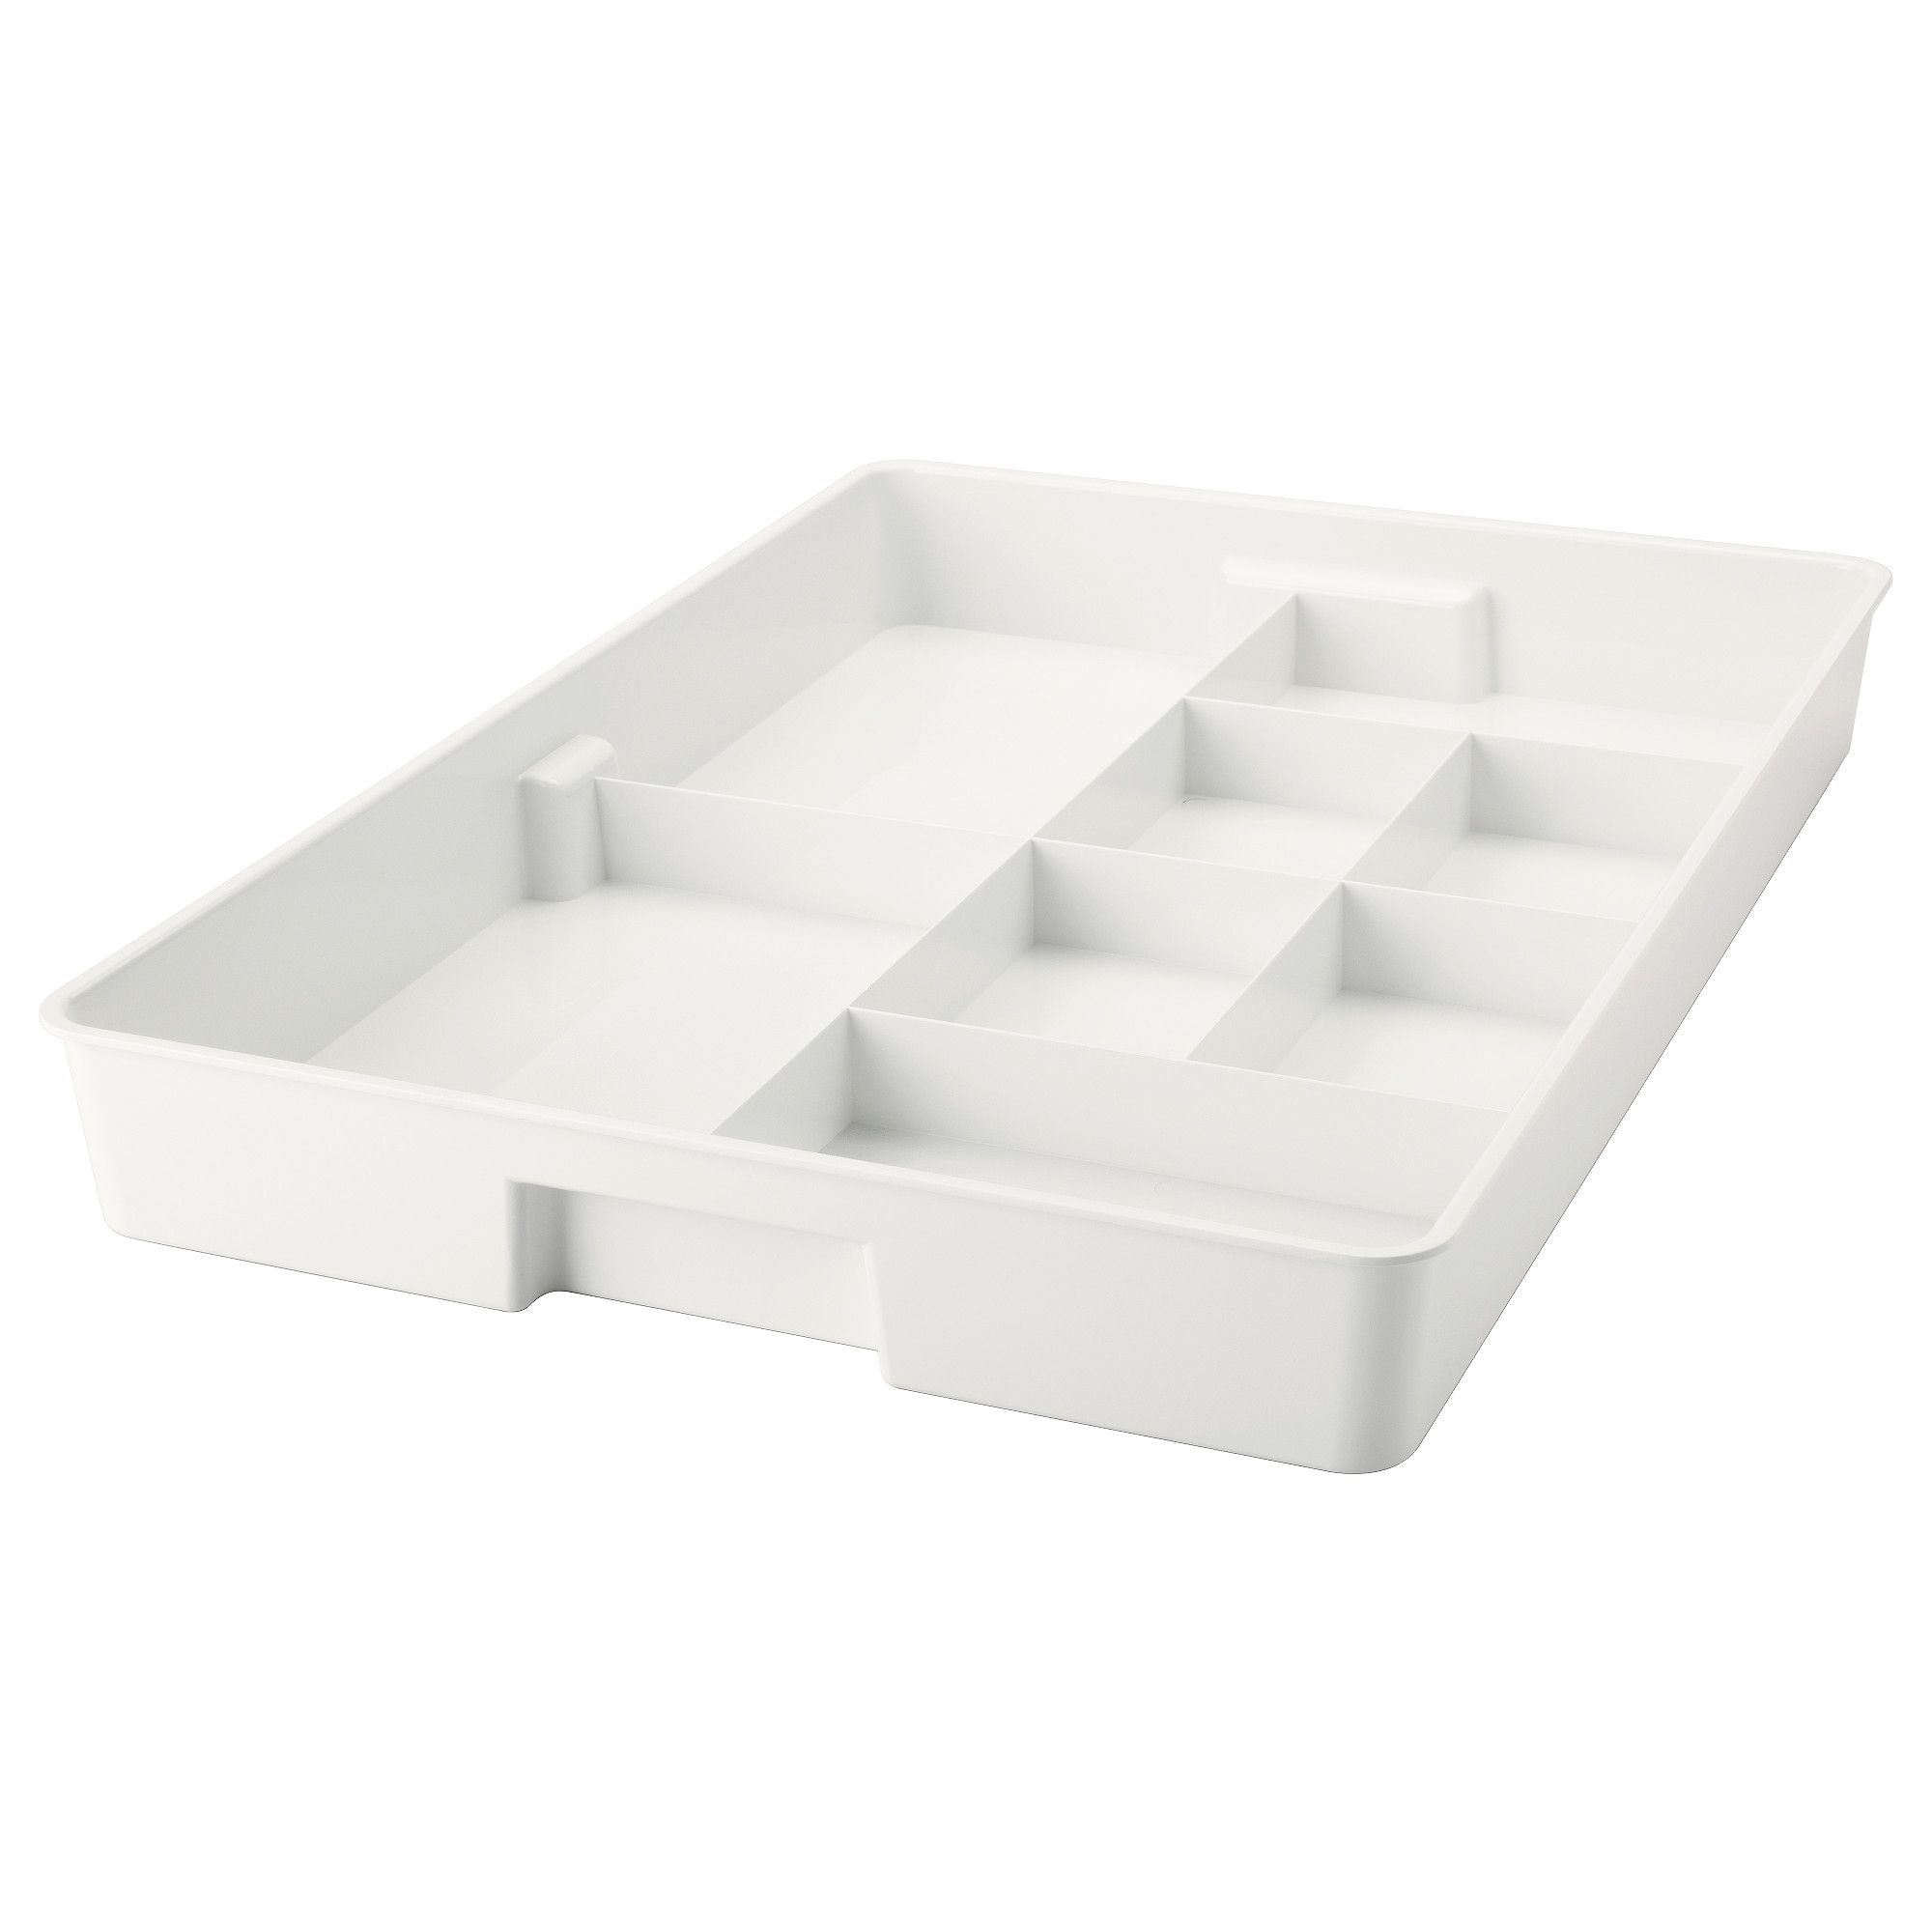 KUGGIS Insert with 8 compartments, white | Organizations, Makeup ...